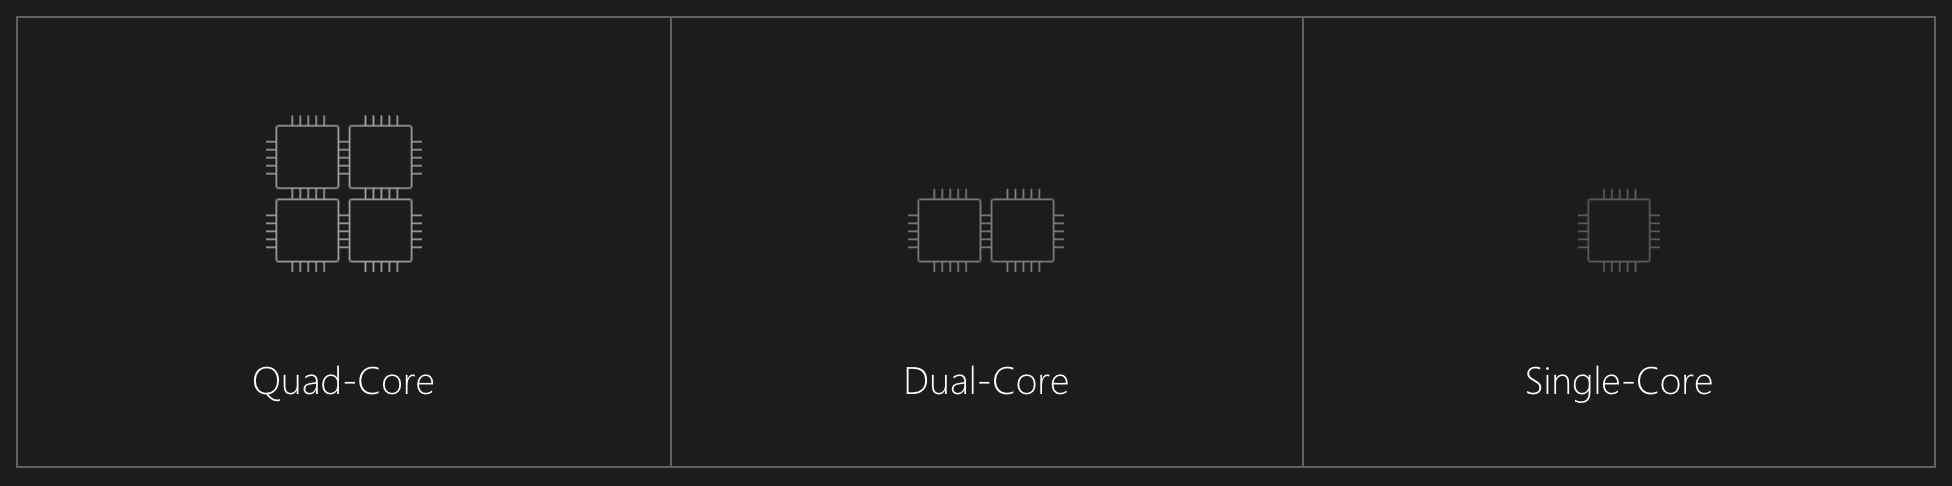 Quad Core, Dual Core, and Single Core